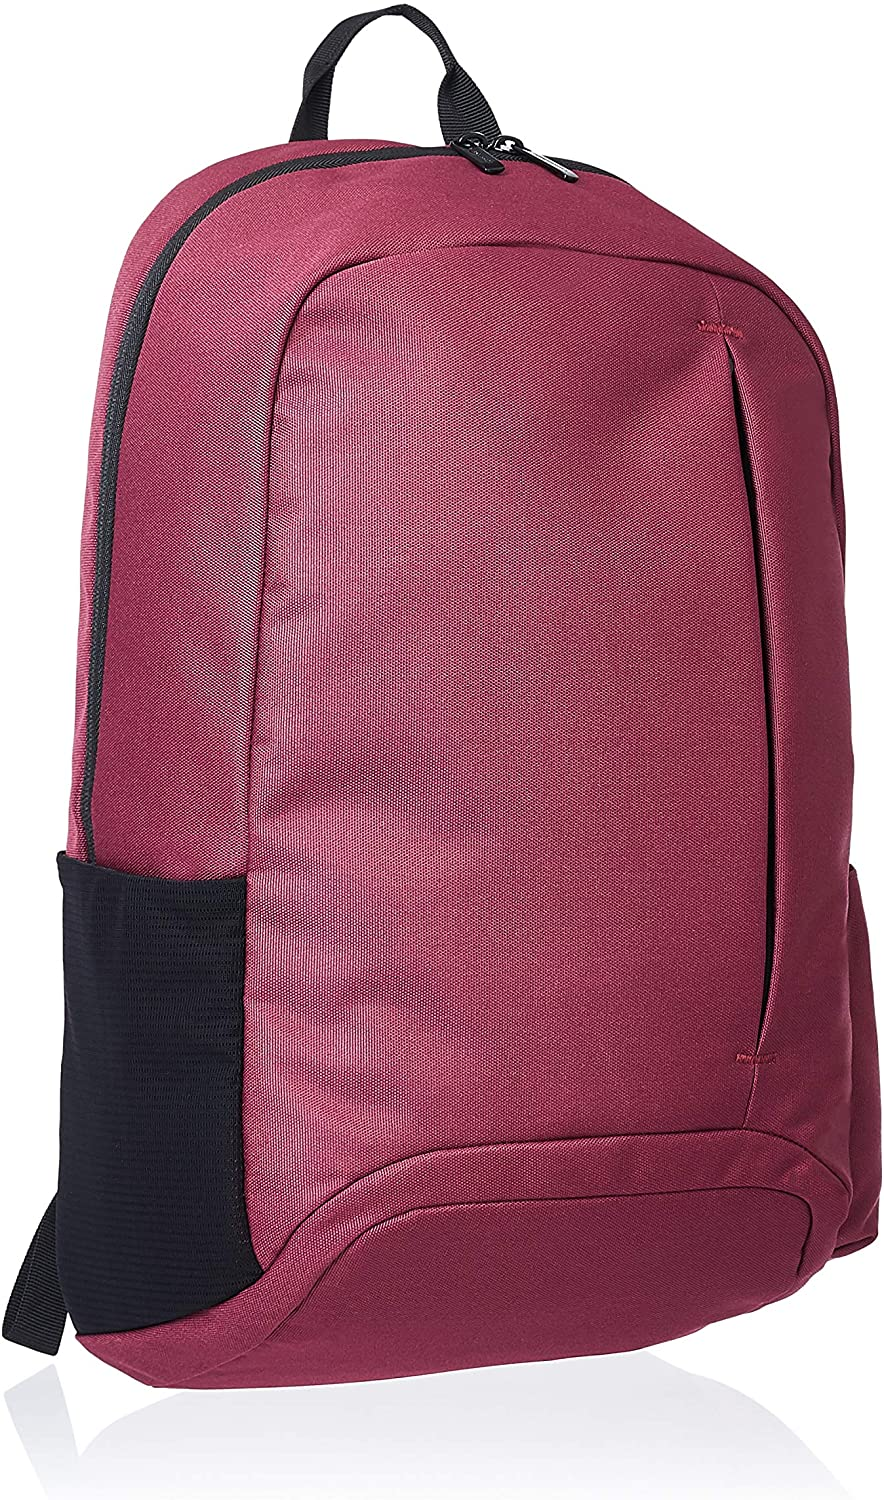 AmazonBasics Everday Backpack for Laptops up to 15-Inches - Maroon (SP-13978-43826-AH )